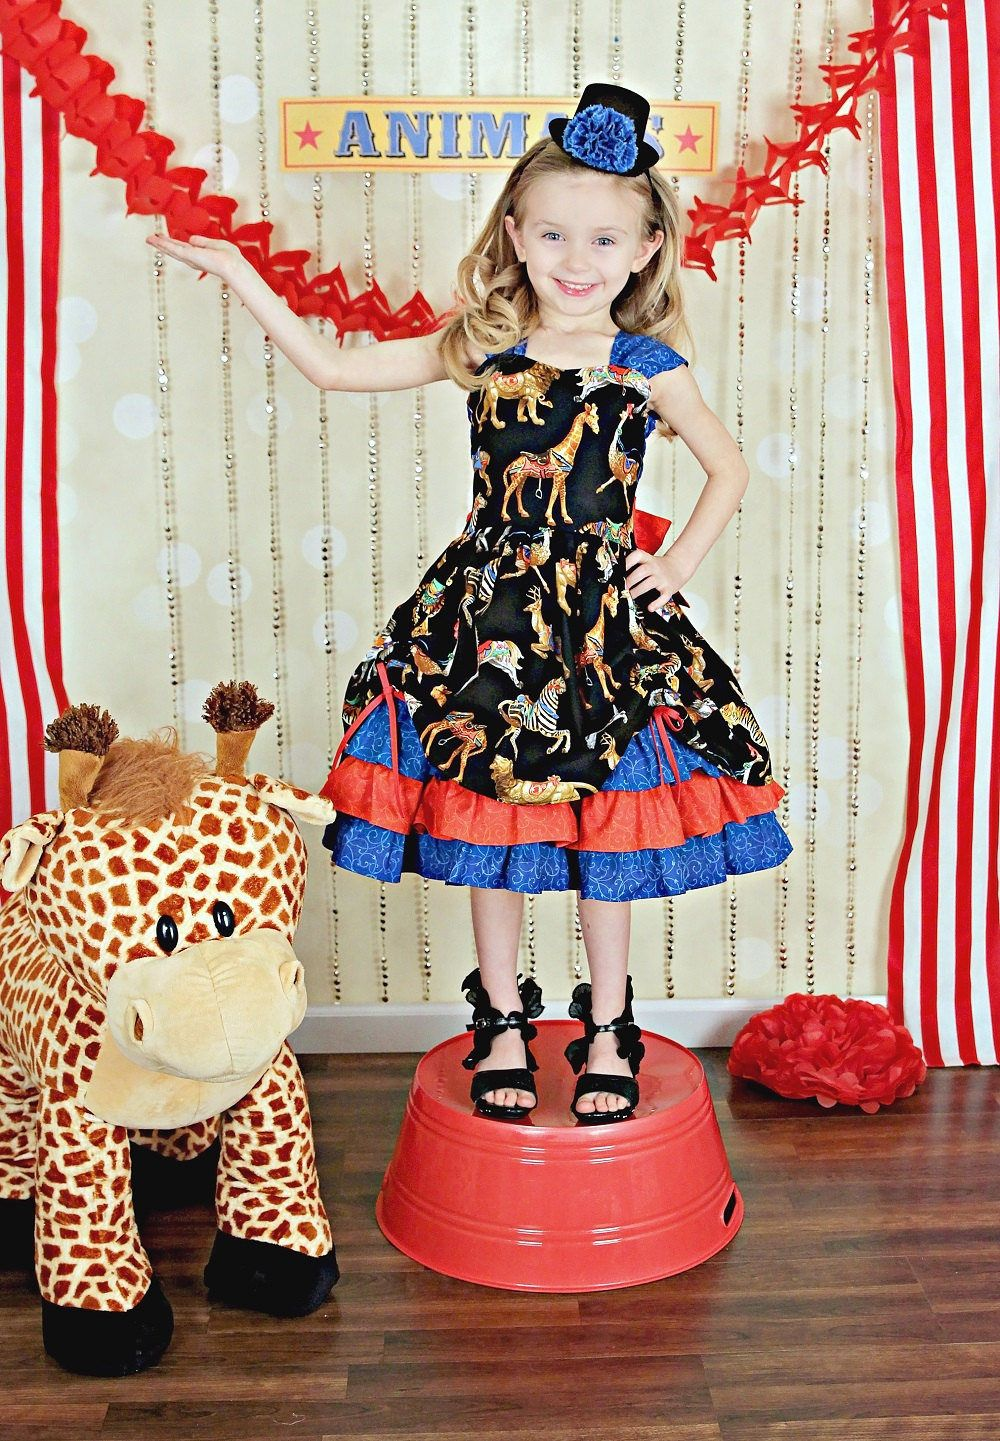 Ringmaster Costume - Circus Birthday Party Outfit - Carousel Party - Ruffle Dress - Girls Clothes  sc 1 st  Pinterest & Ringmaster Costume - Circus Birthday Party Outfit - Carousel Party ...